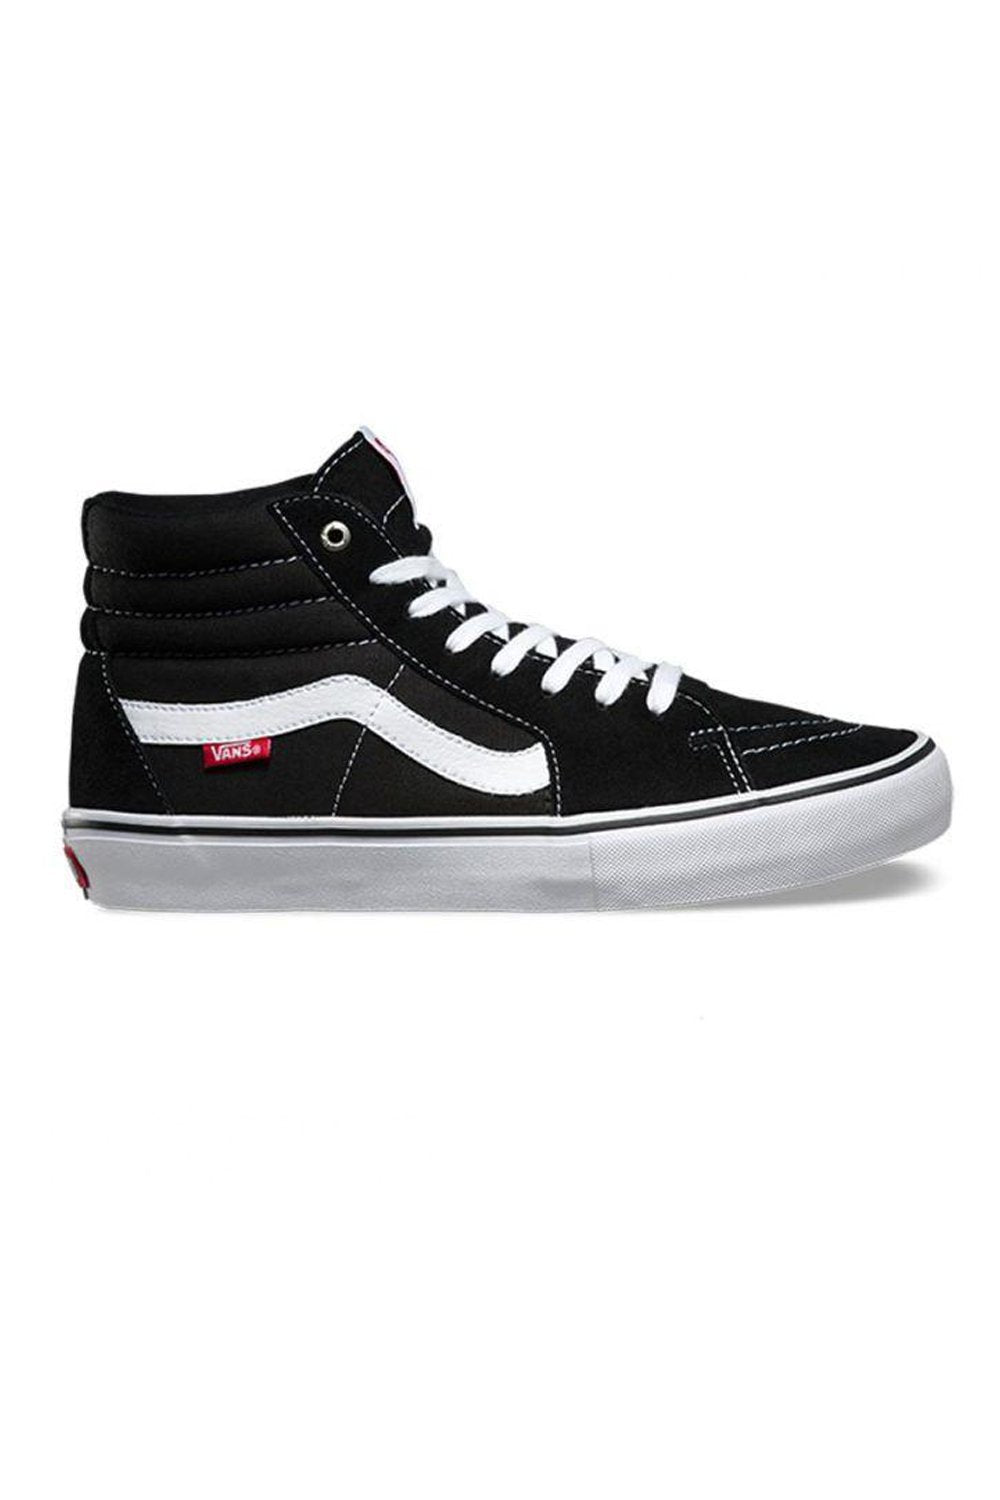 Vans SK8-Hi Kids Black / White Shoe